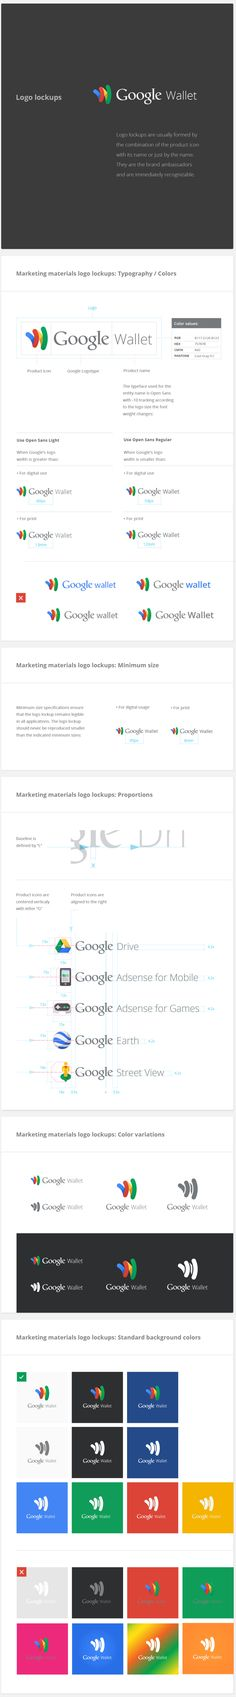 Google Visual Assets Guidelines - 3/Part 1